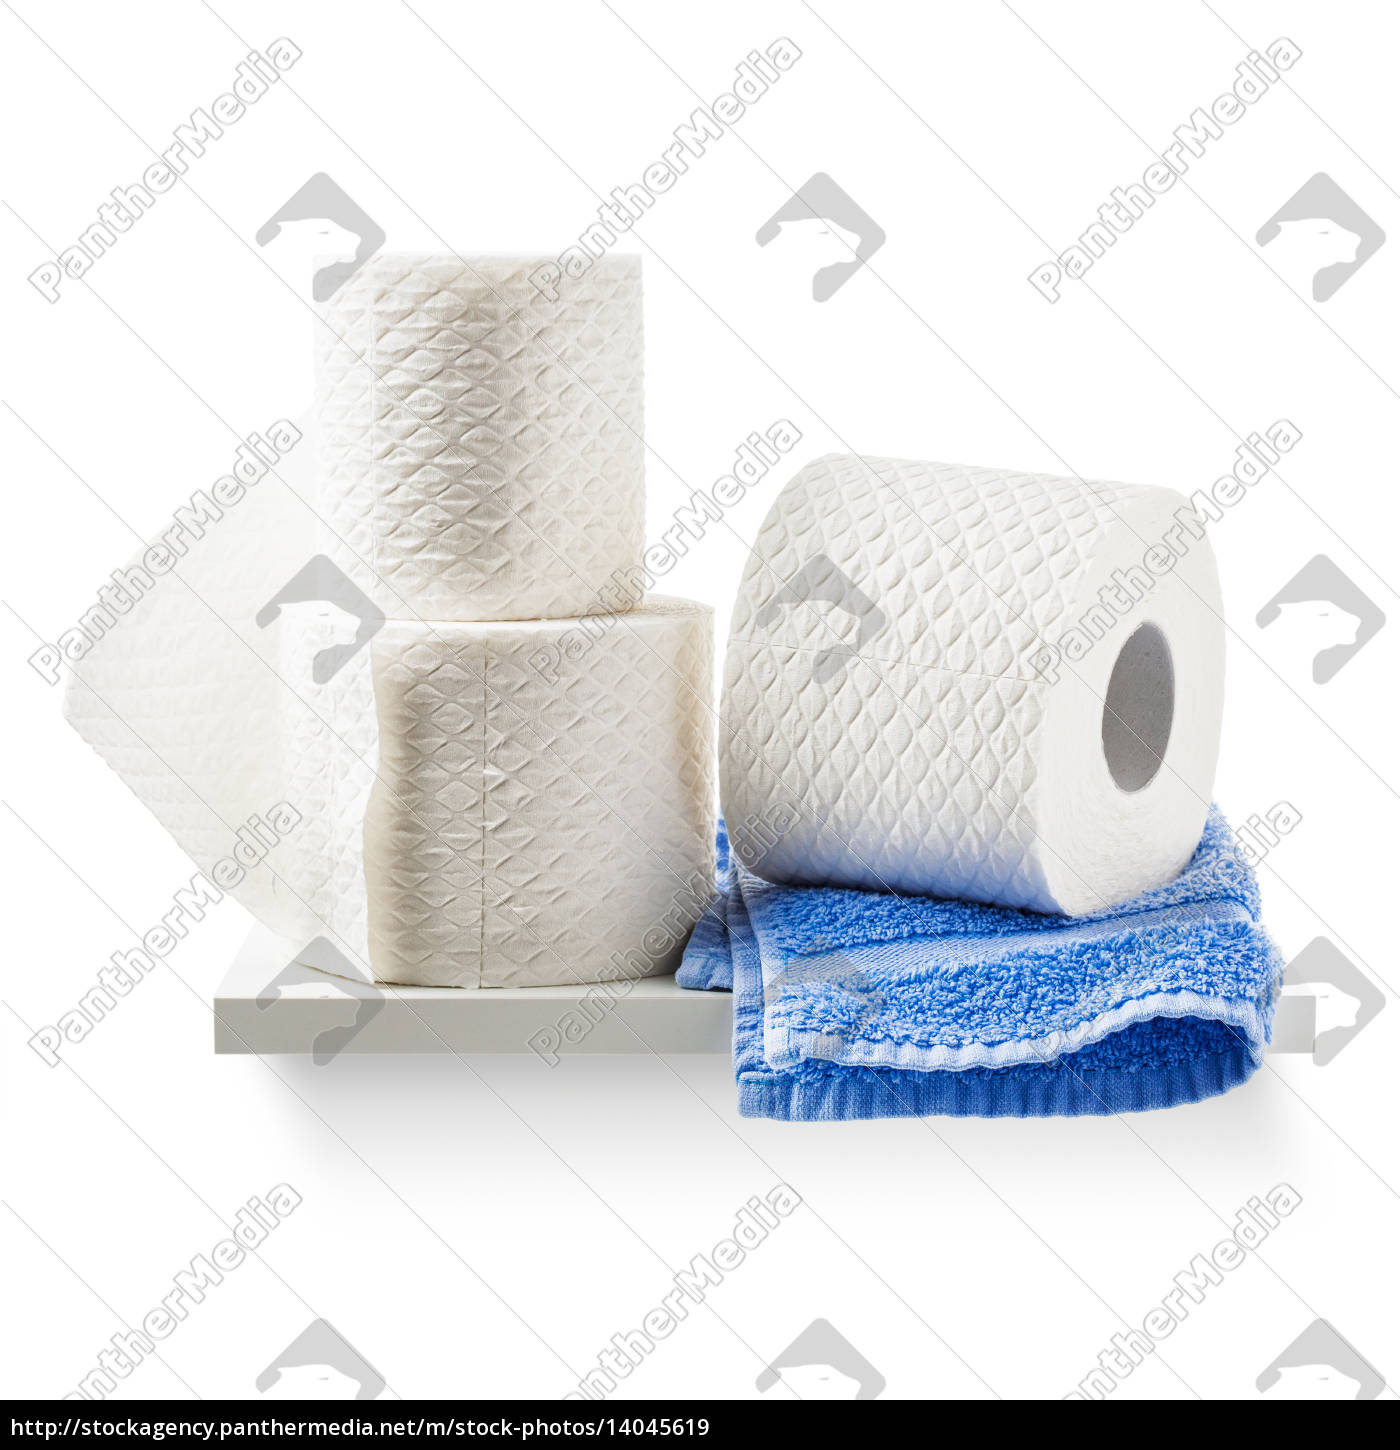 toilet, paper, and, towel - 14045619